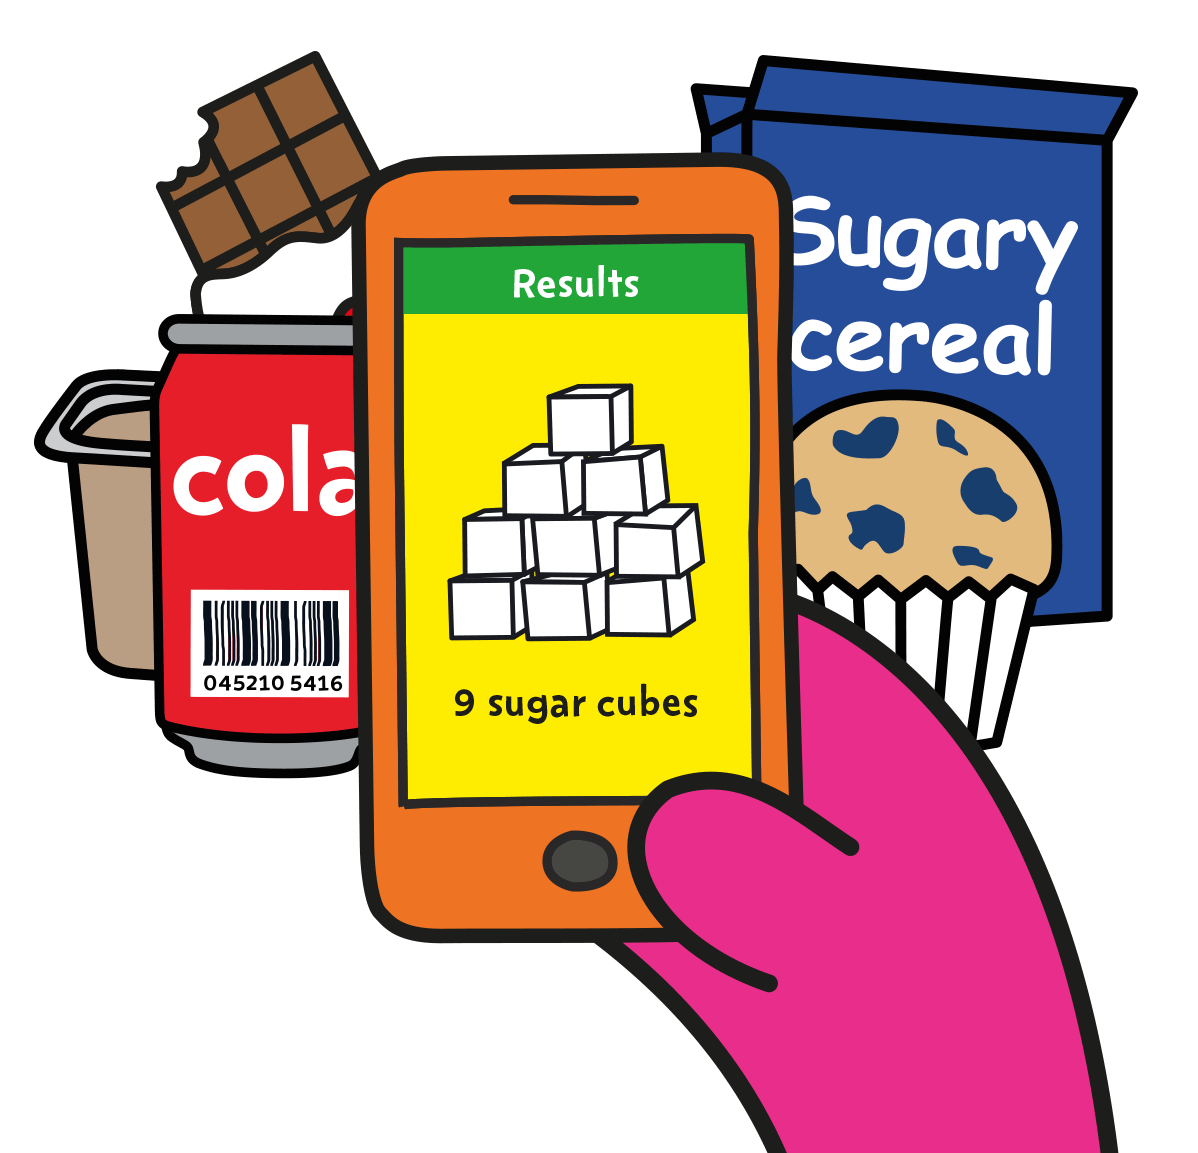 Change your life and download the Sugar Smart app today - East